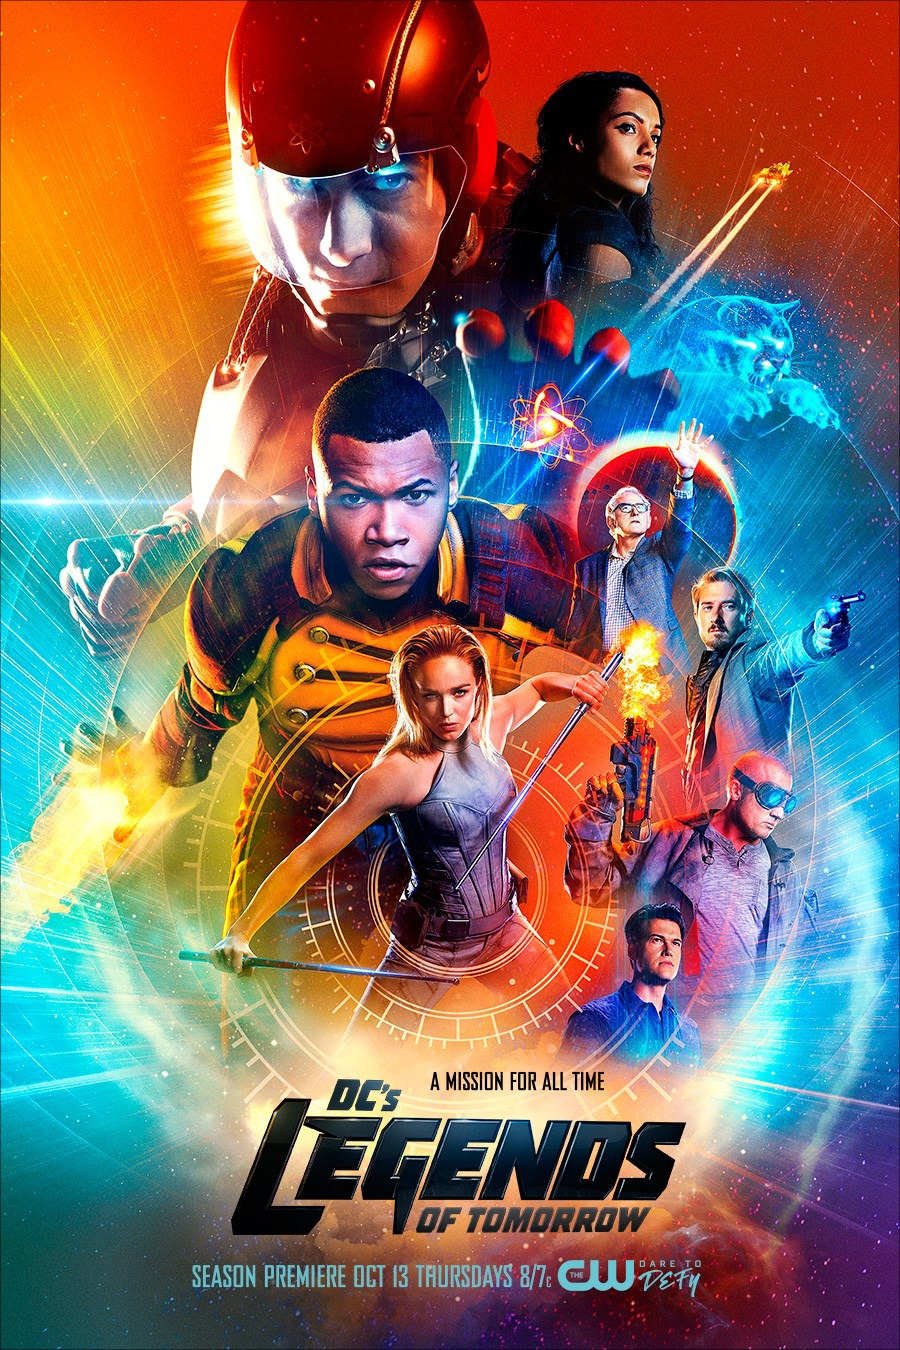 Legends of Tomorrow T2 E1